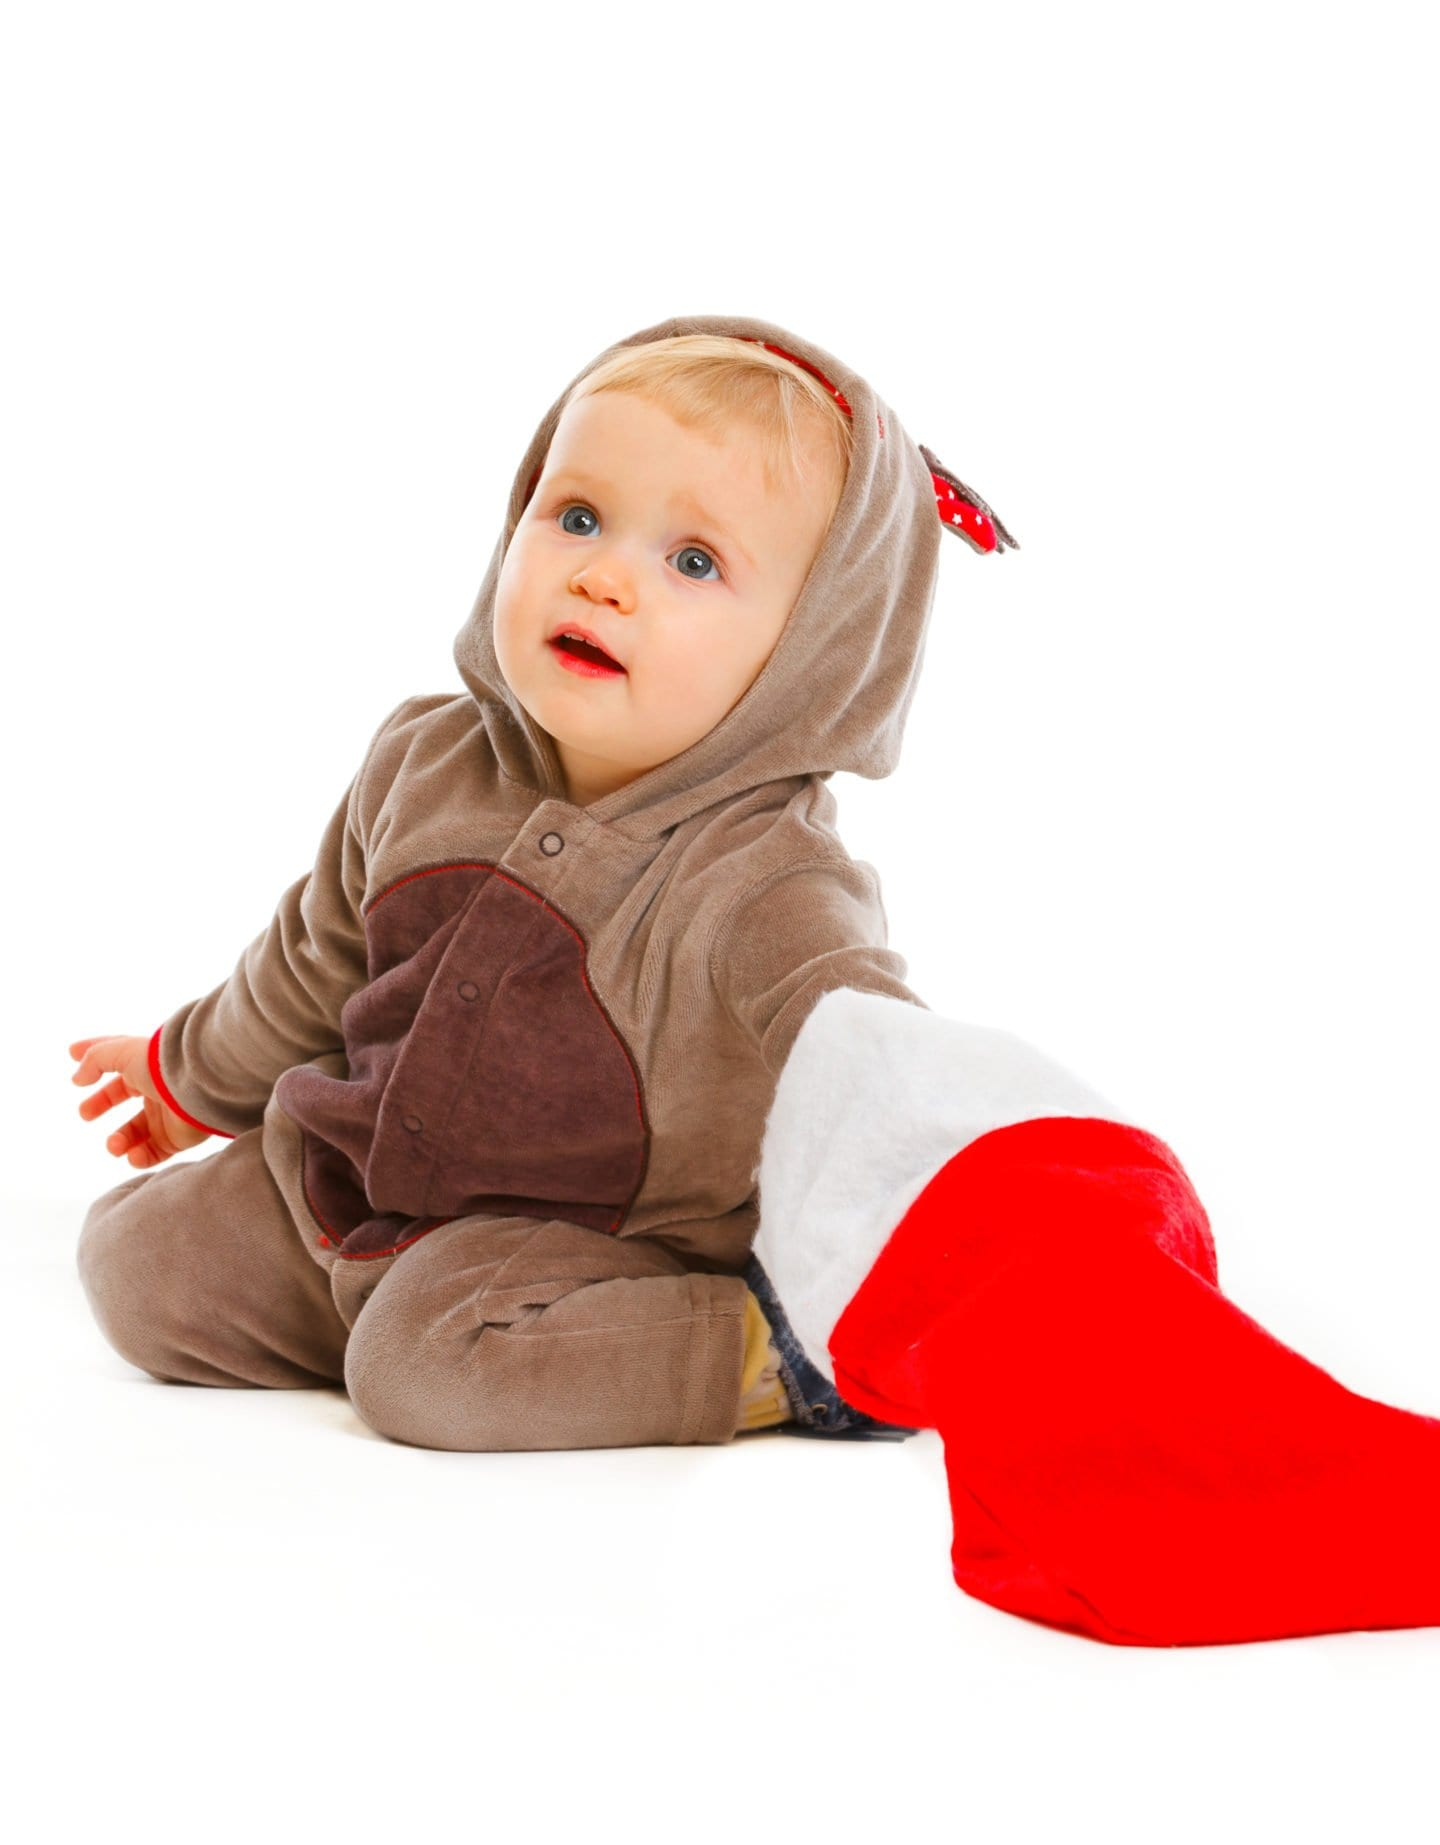 What gifts and stocking stuffers do you get for a baby? Here is a list of items to make your shopping easier. Here are the best gifts for a baby 0-12 months | Best Gifts and Stocking Stuffers for a Baby at Christmas | Christmas gifts for babies| Stocking Stuffers for Babies